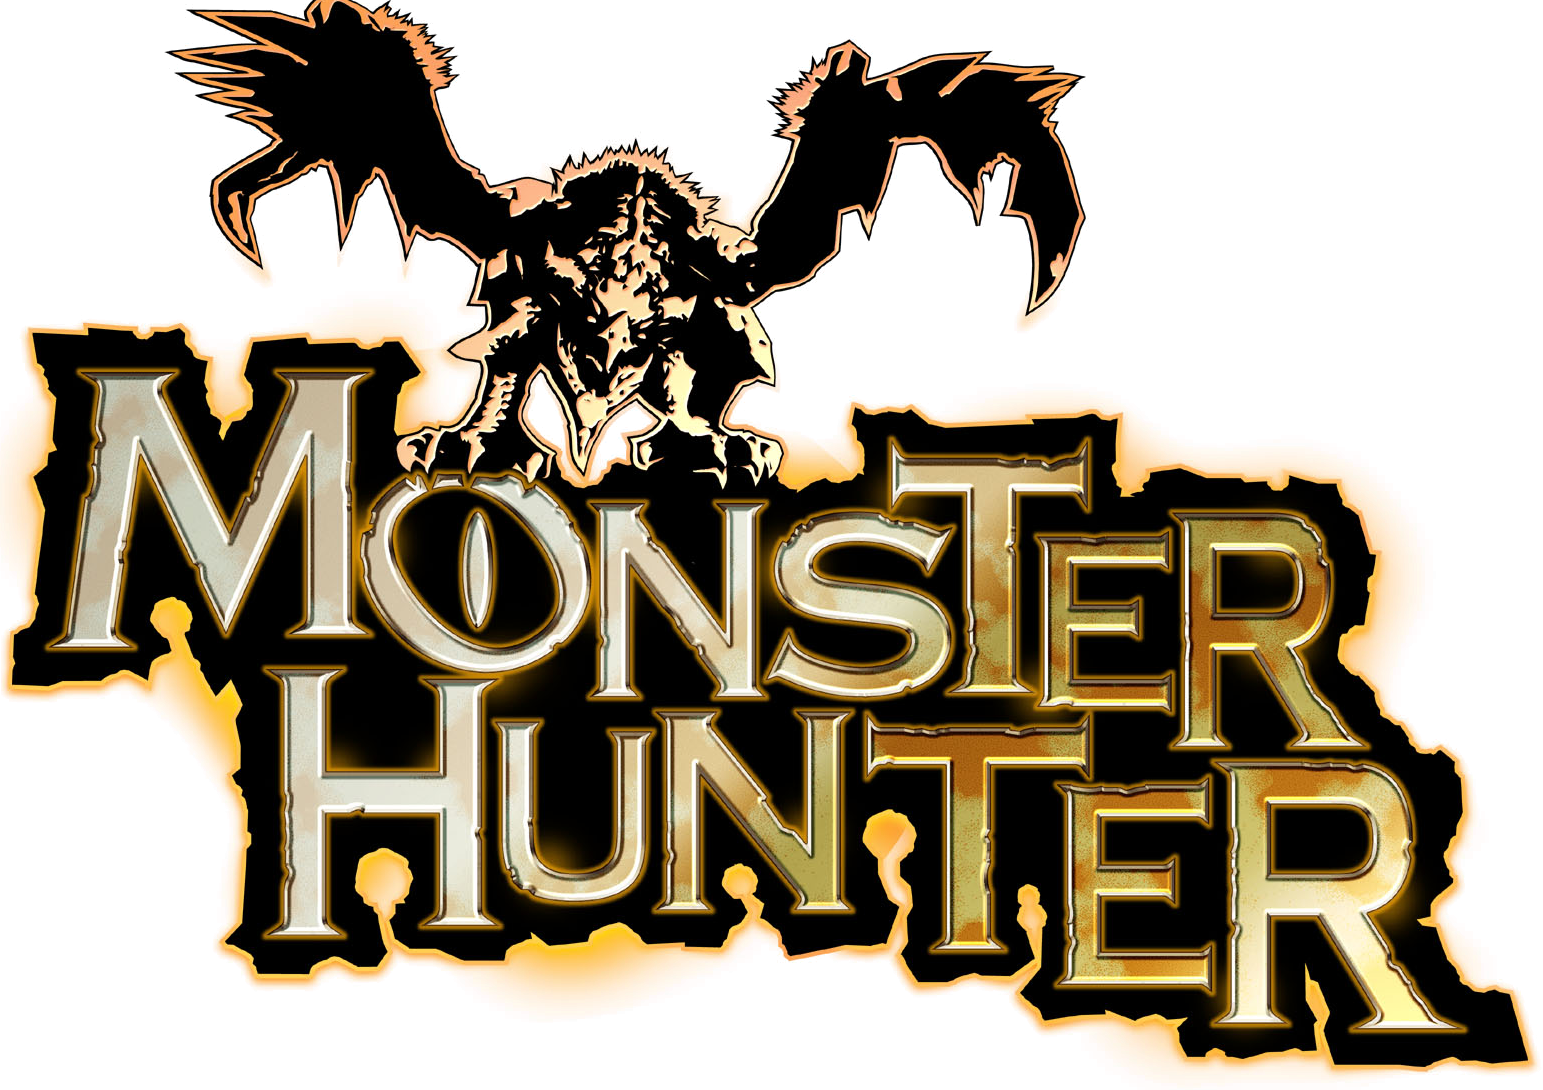 Monster hunter logo png. Image mh wiki fandom